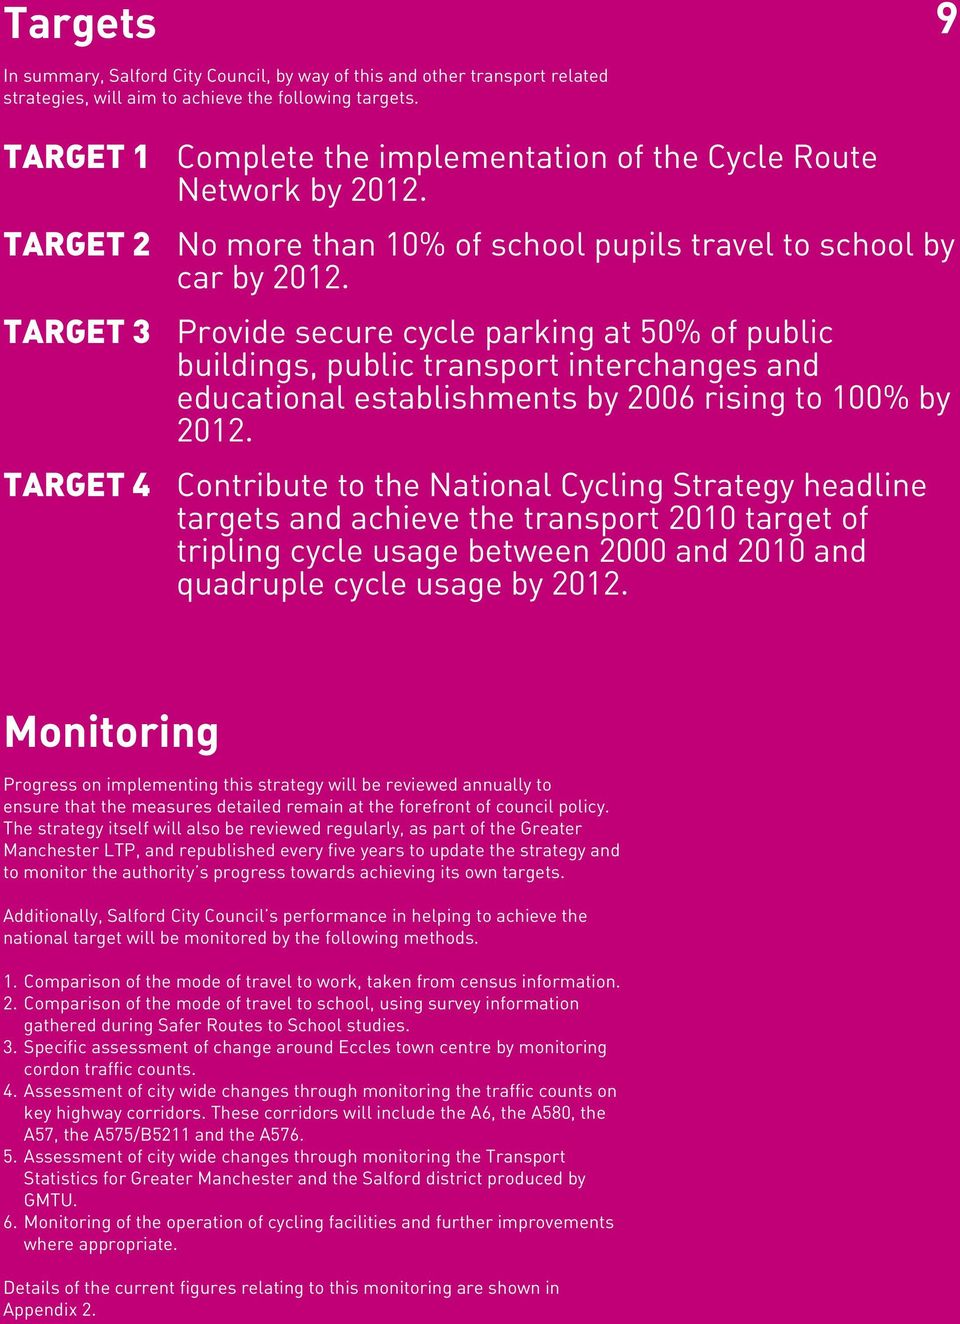 TARGET 3 Provide secure cycle parking at 50% of public buildings, public transport interchanges and educational establishments by 2006 rising to 100% by 2012.